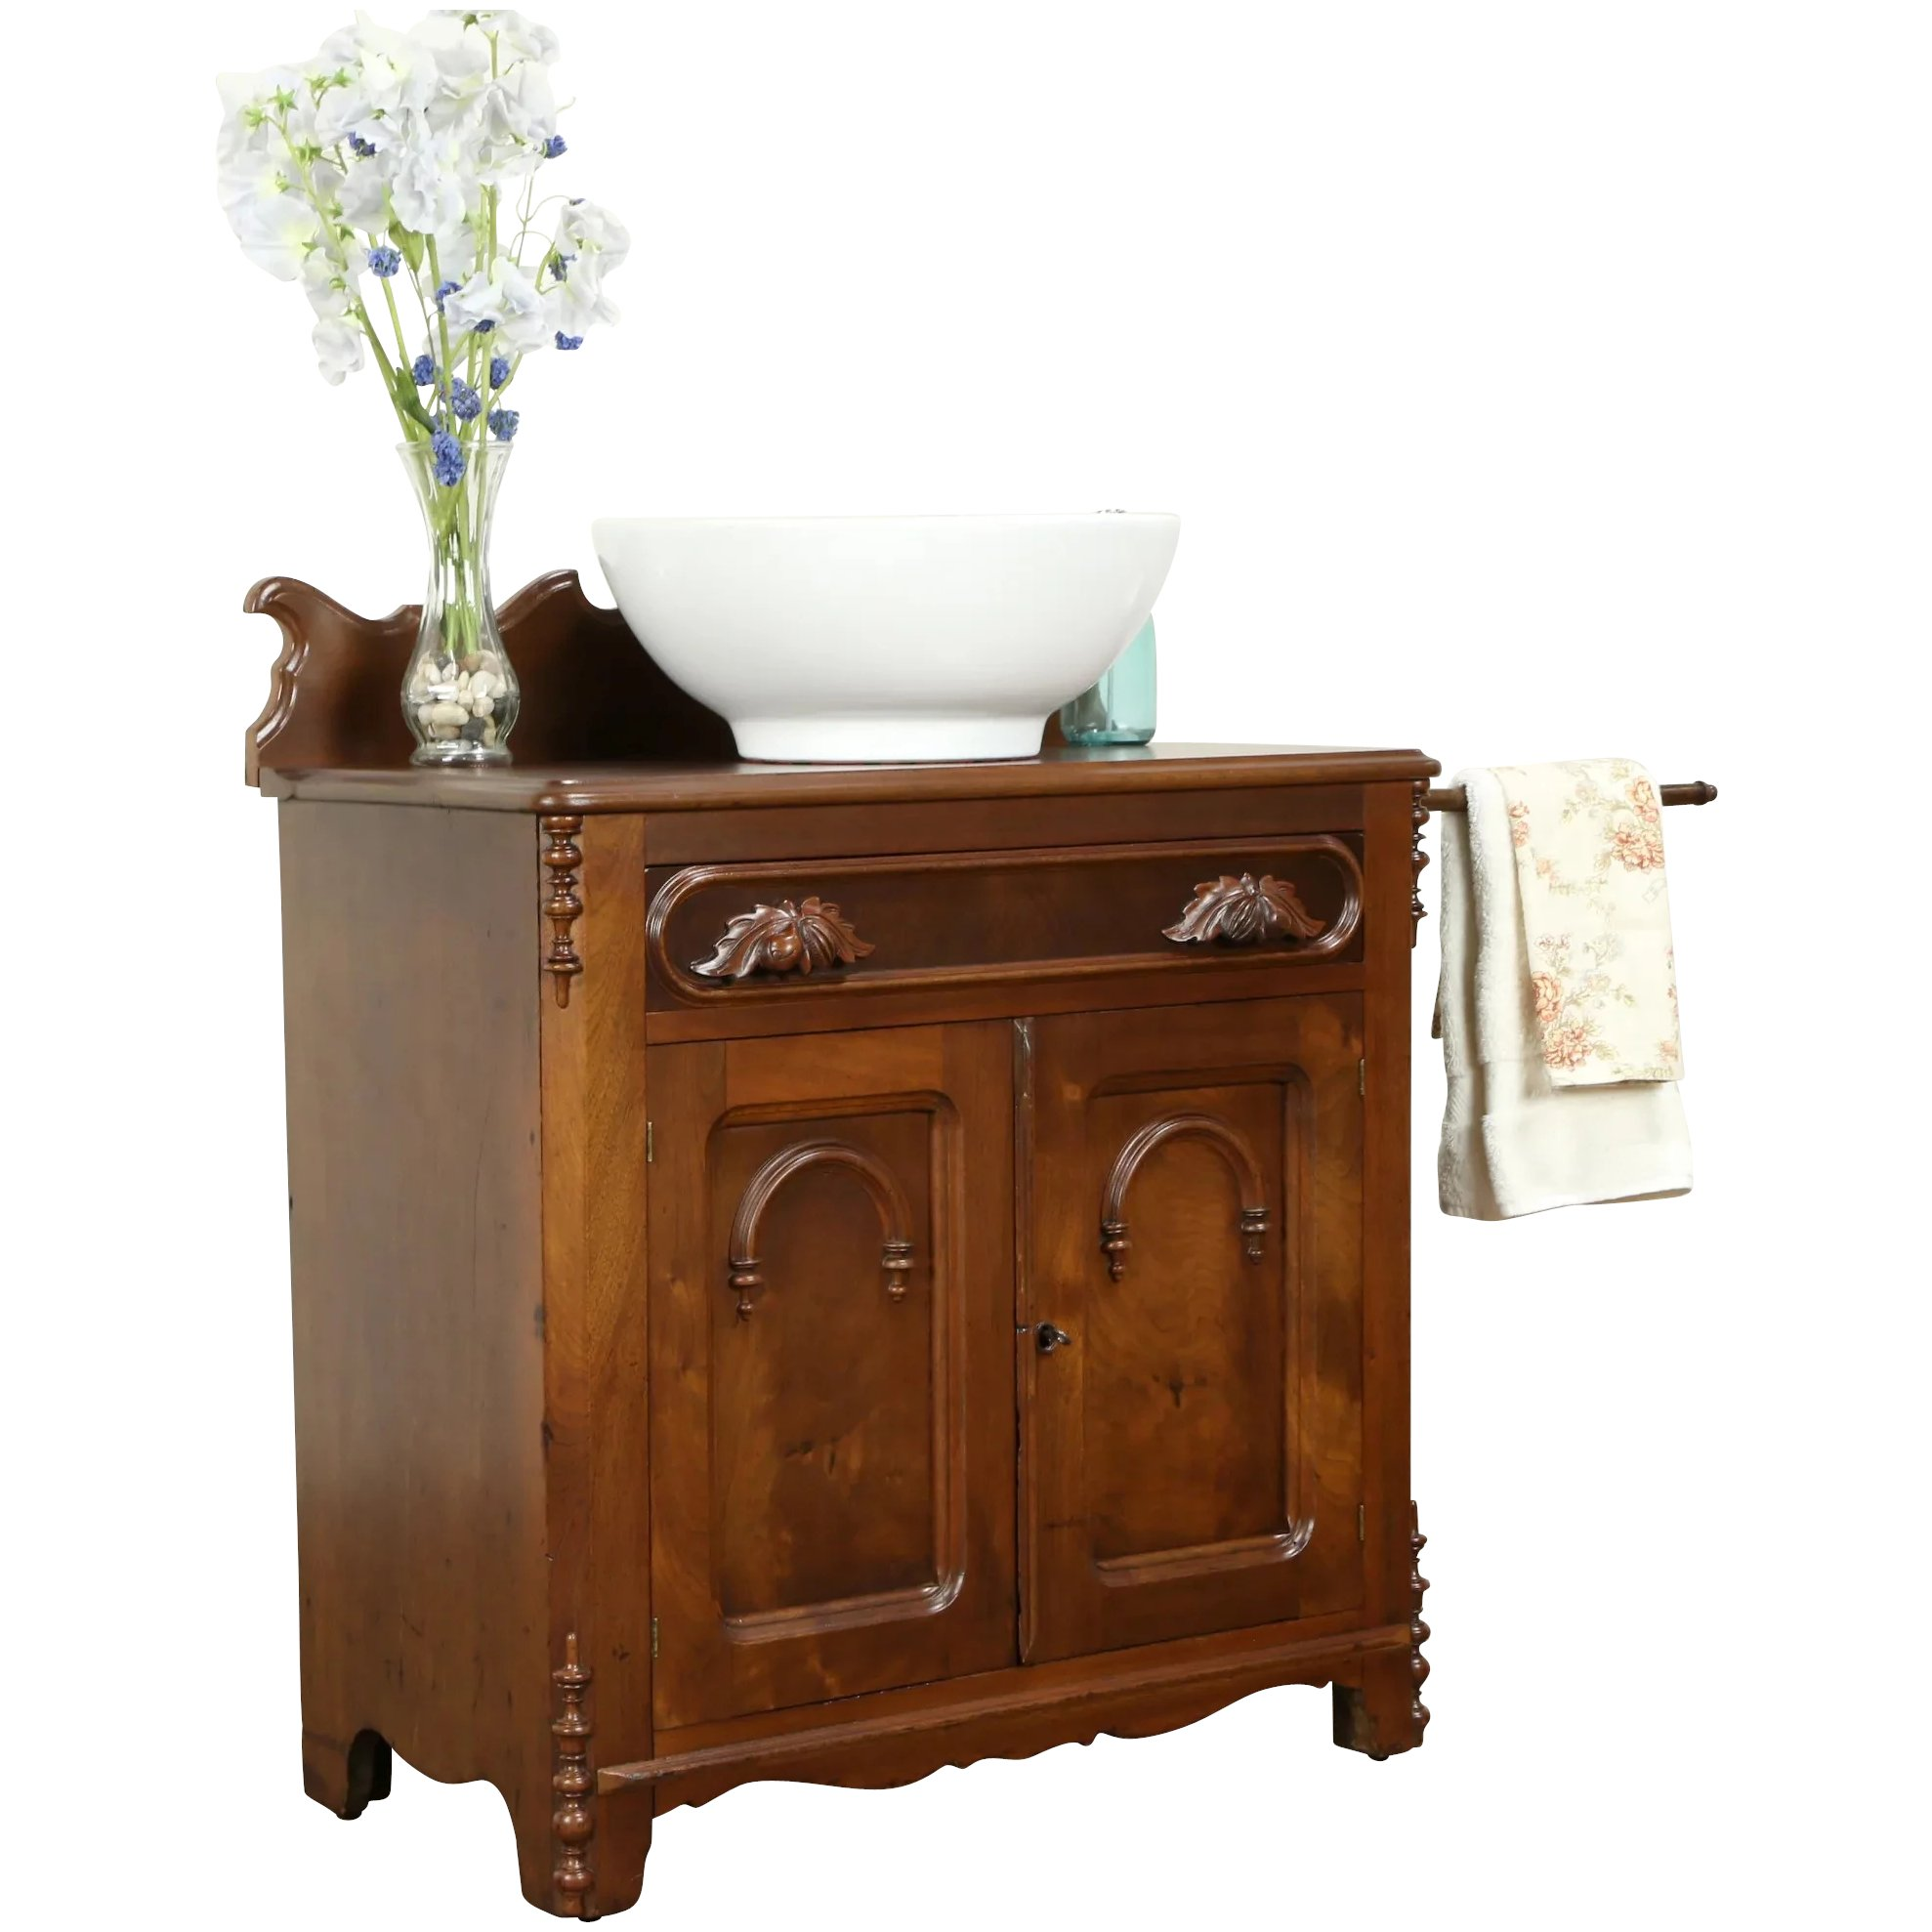 Victorian Antique Walnut Chest Towel Bar Commode Nightstand End Table 31426